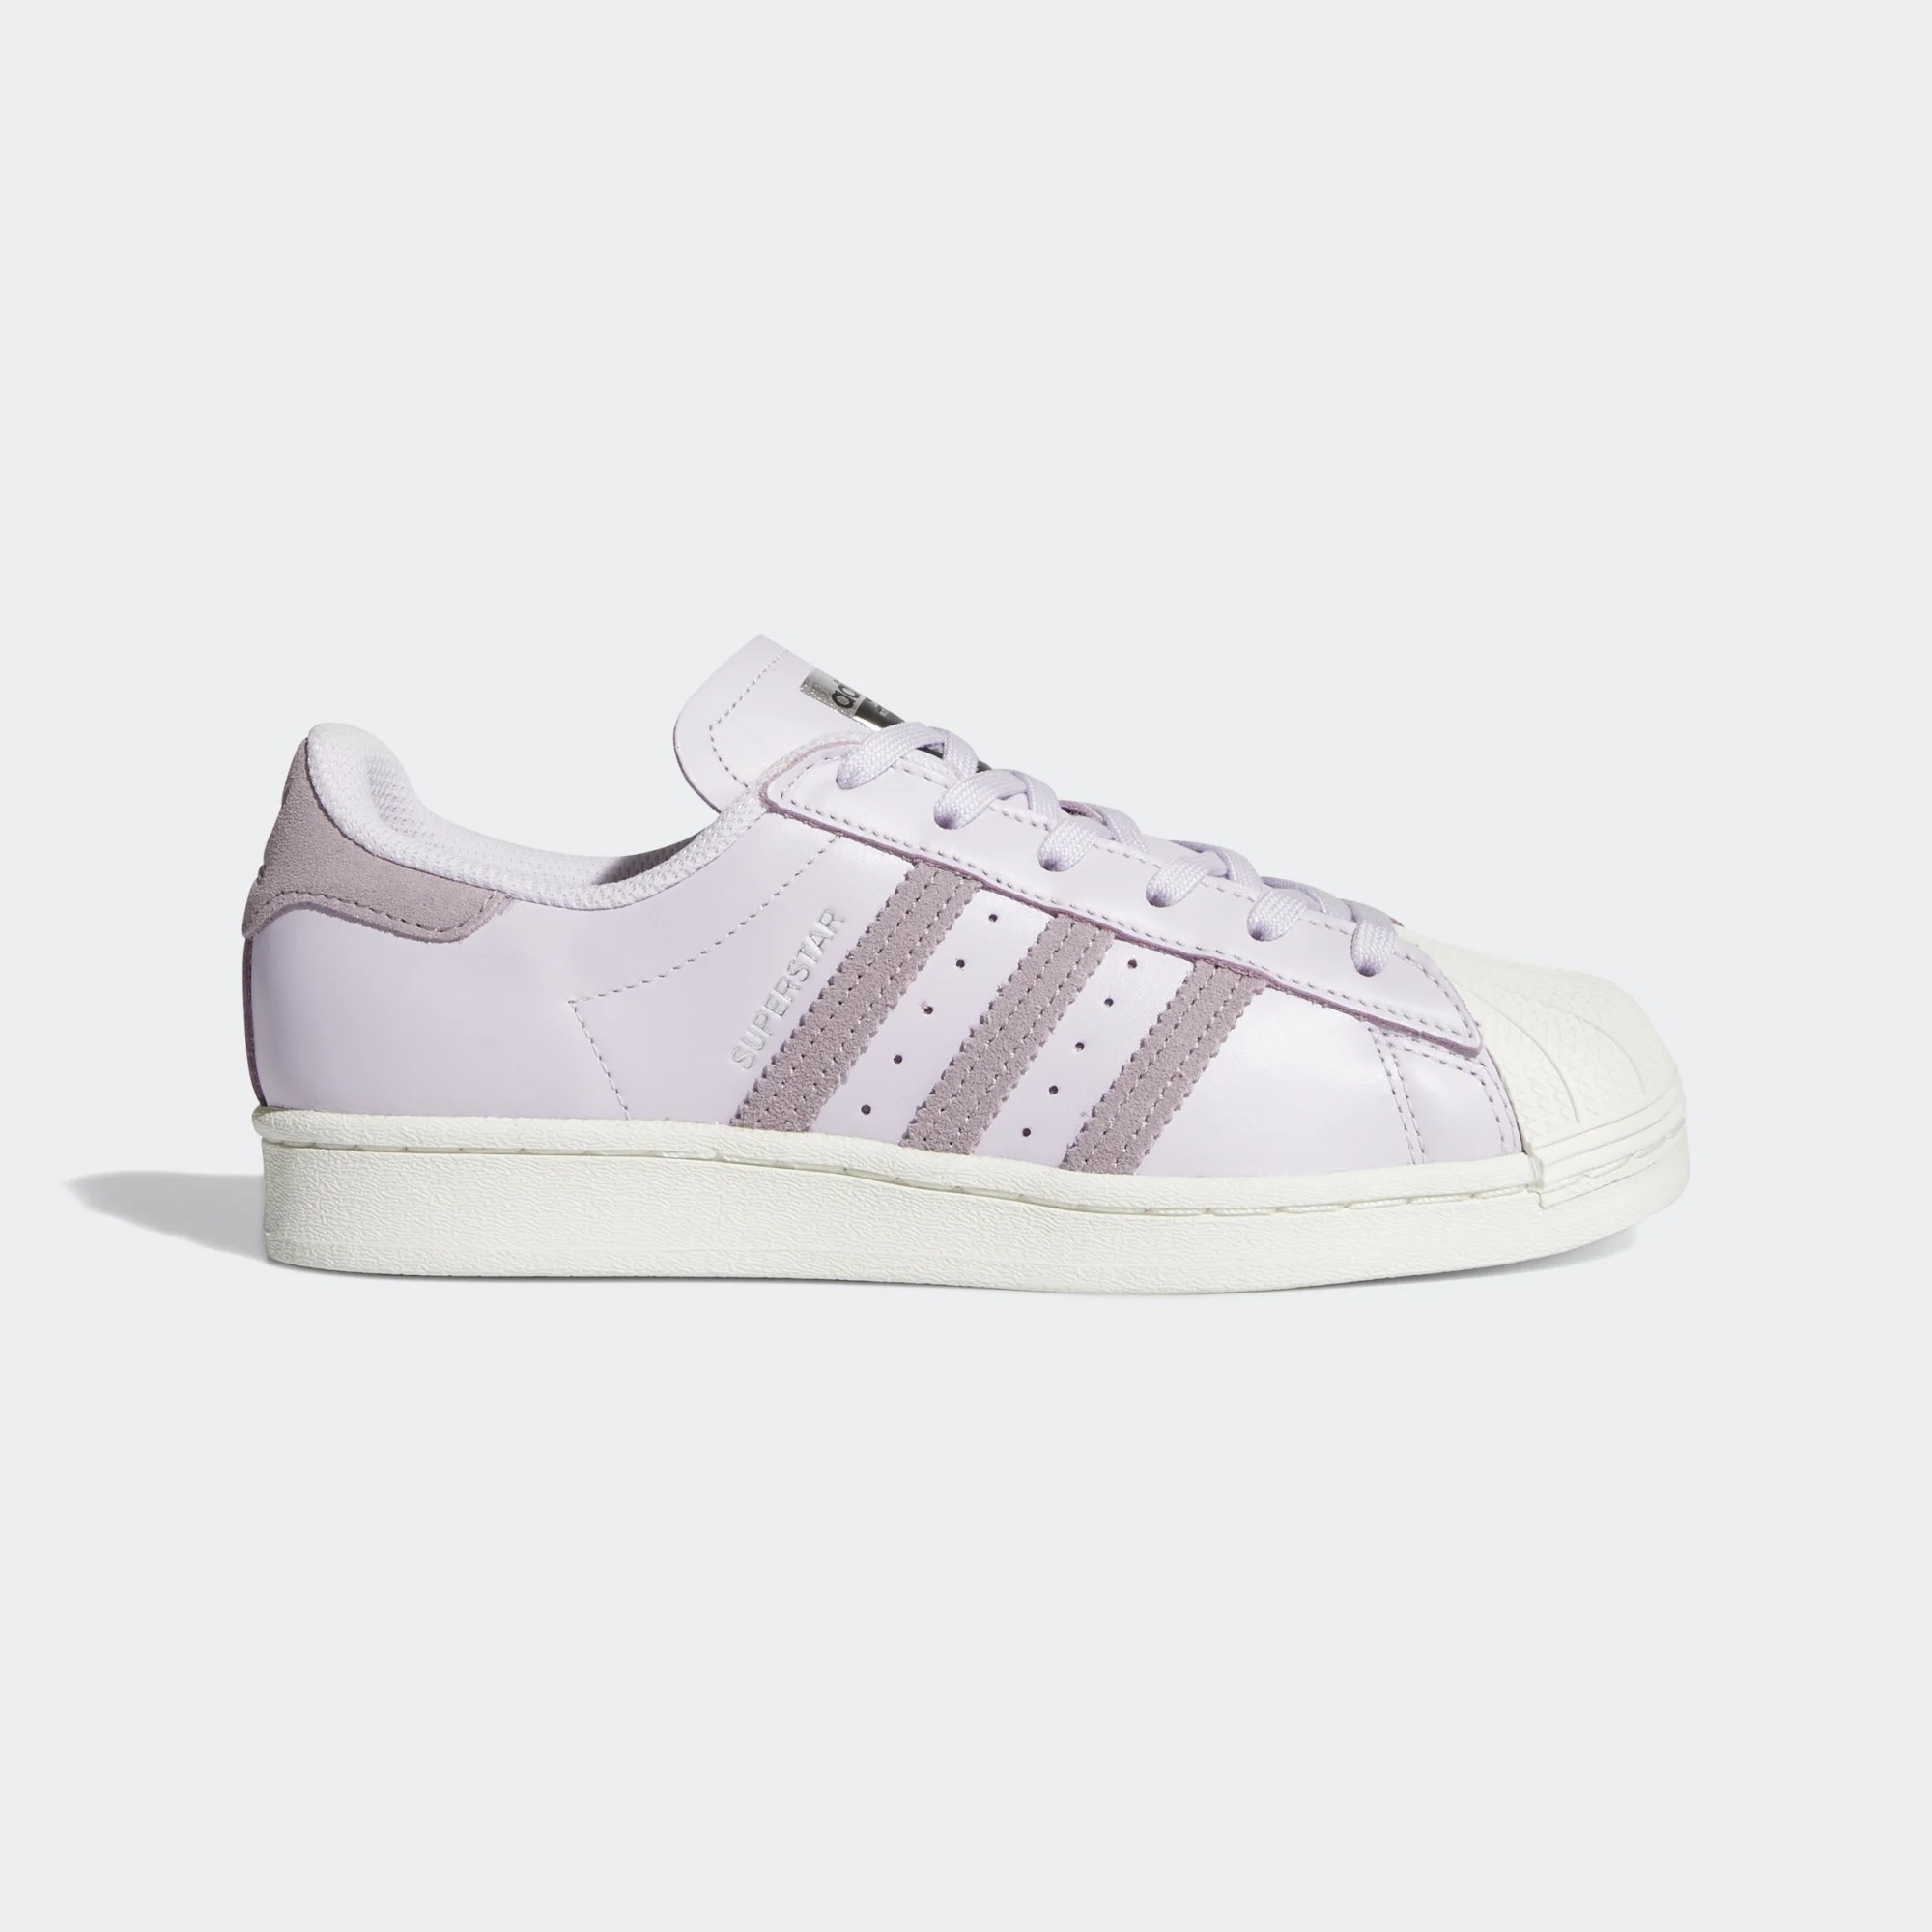 adidas Originals Superstar Mujer Púrpura Sneakers FV3372